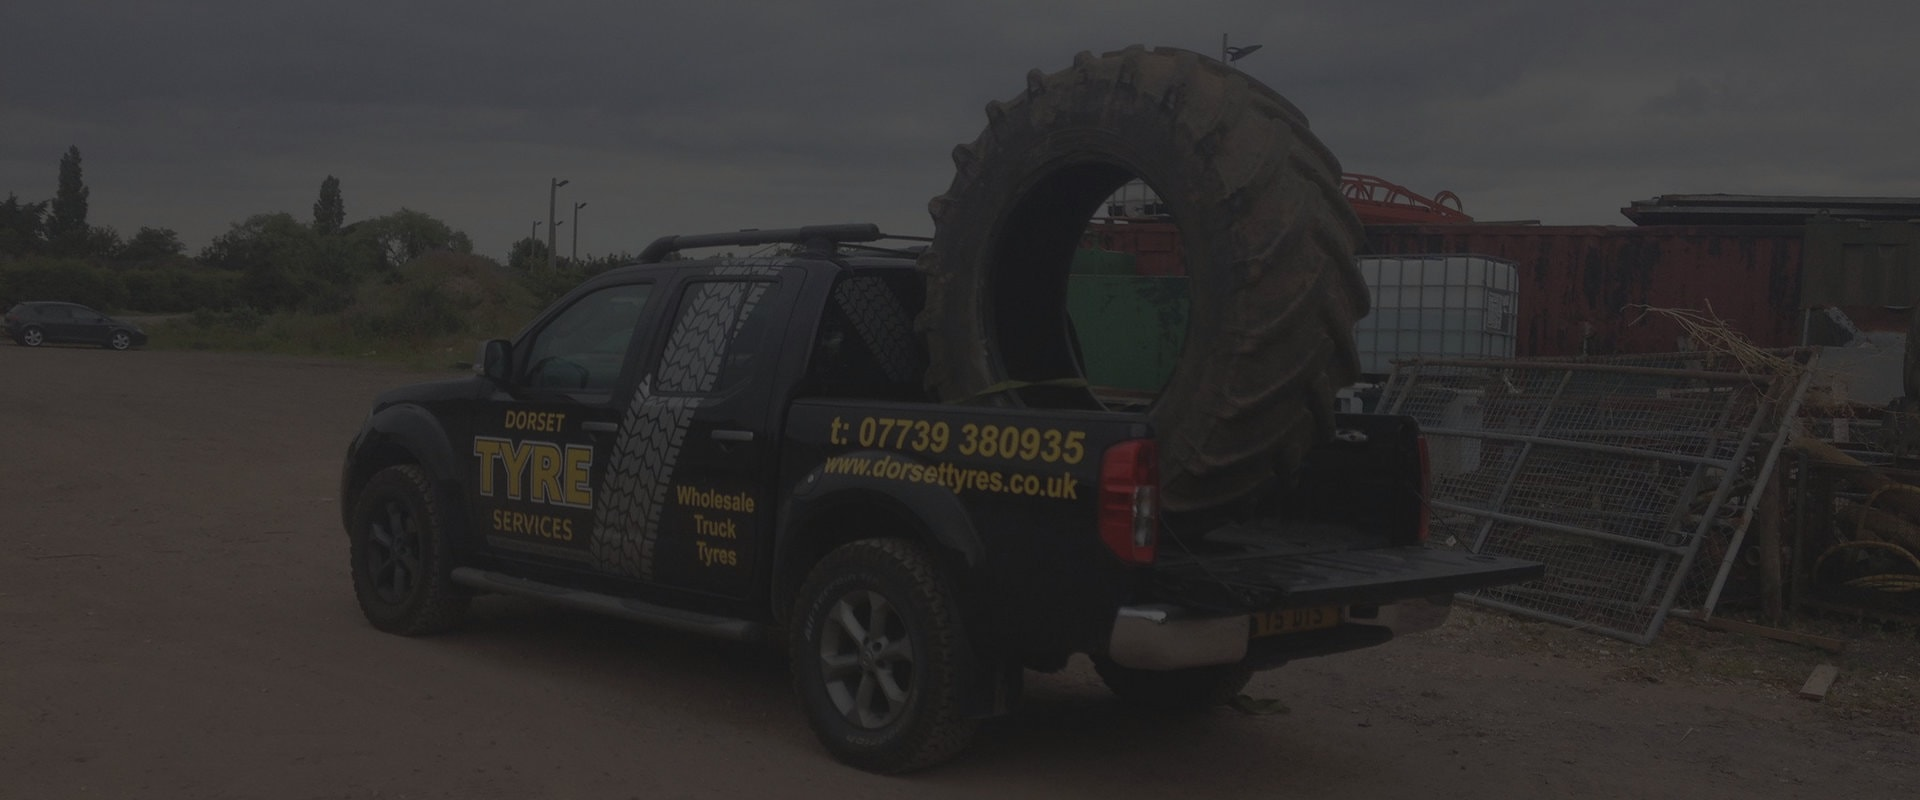 Dorset Tyre Services Company Vehicle